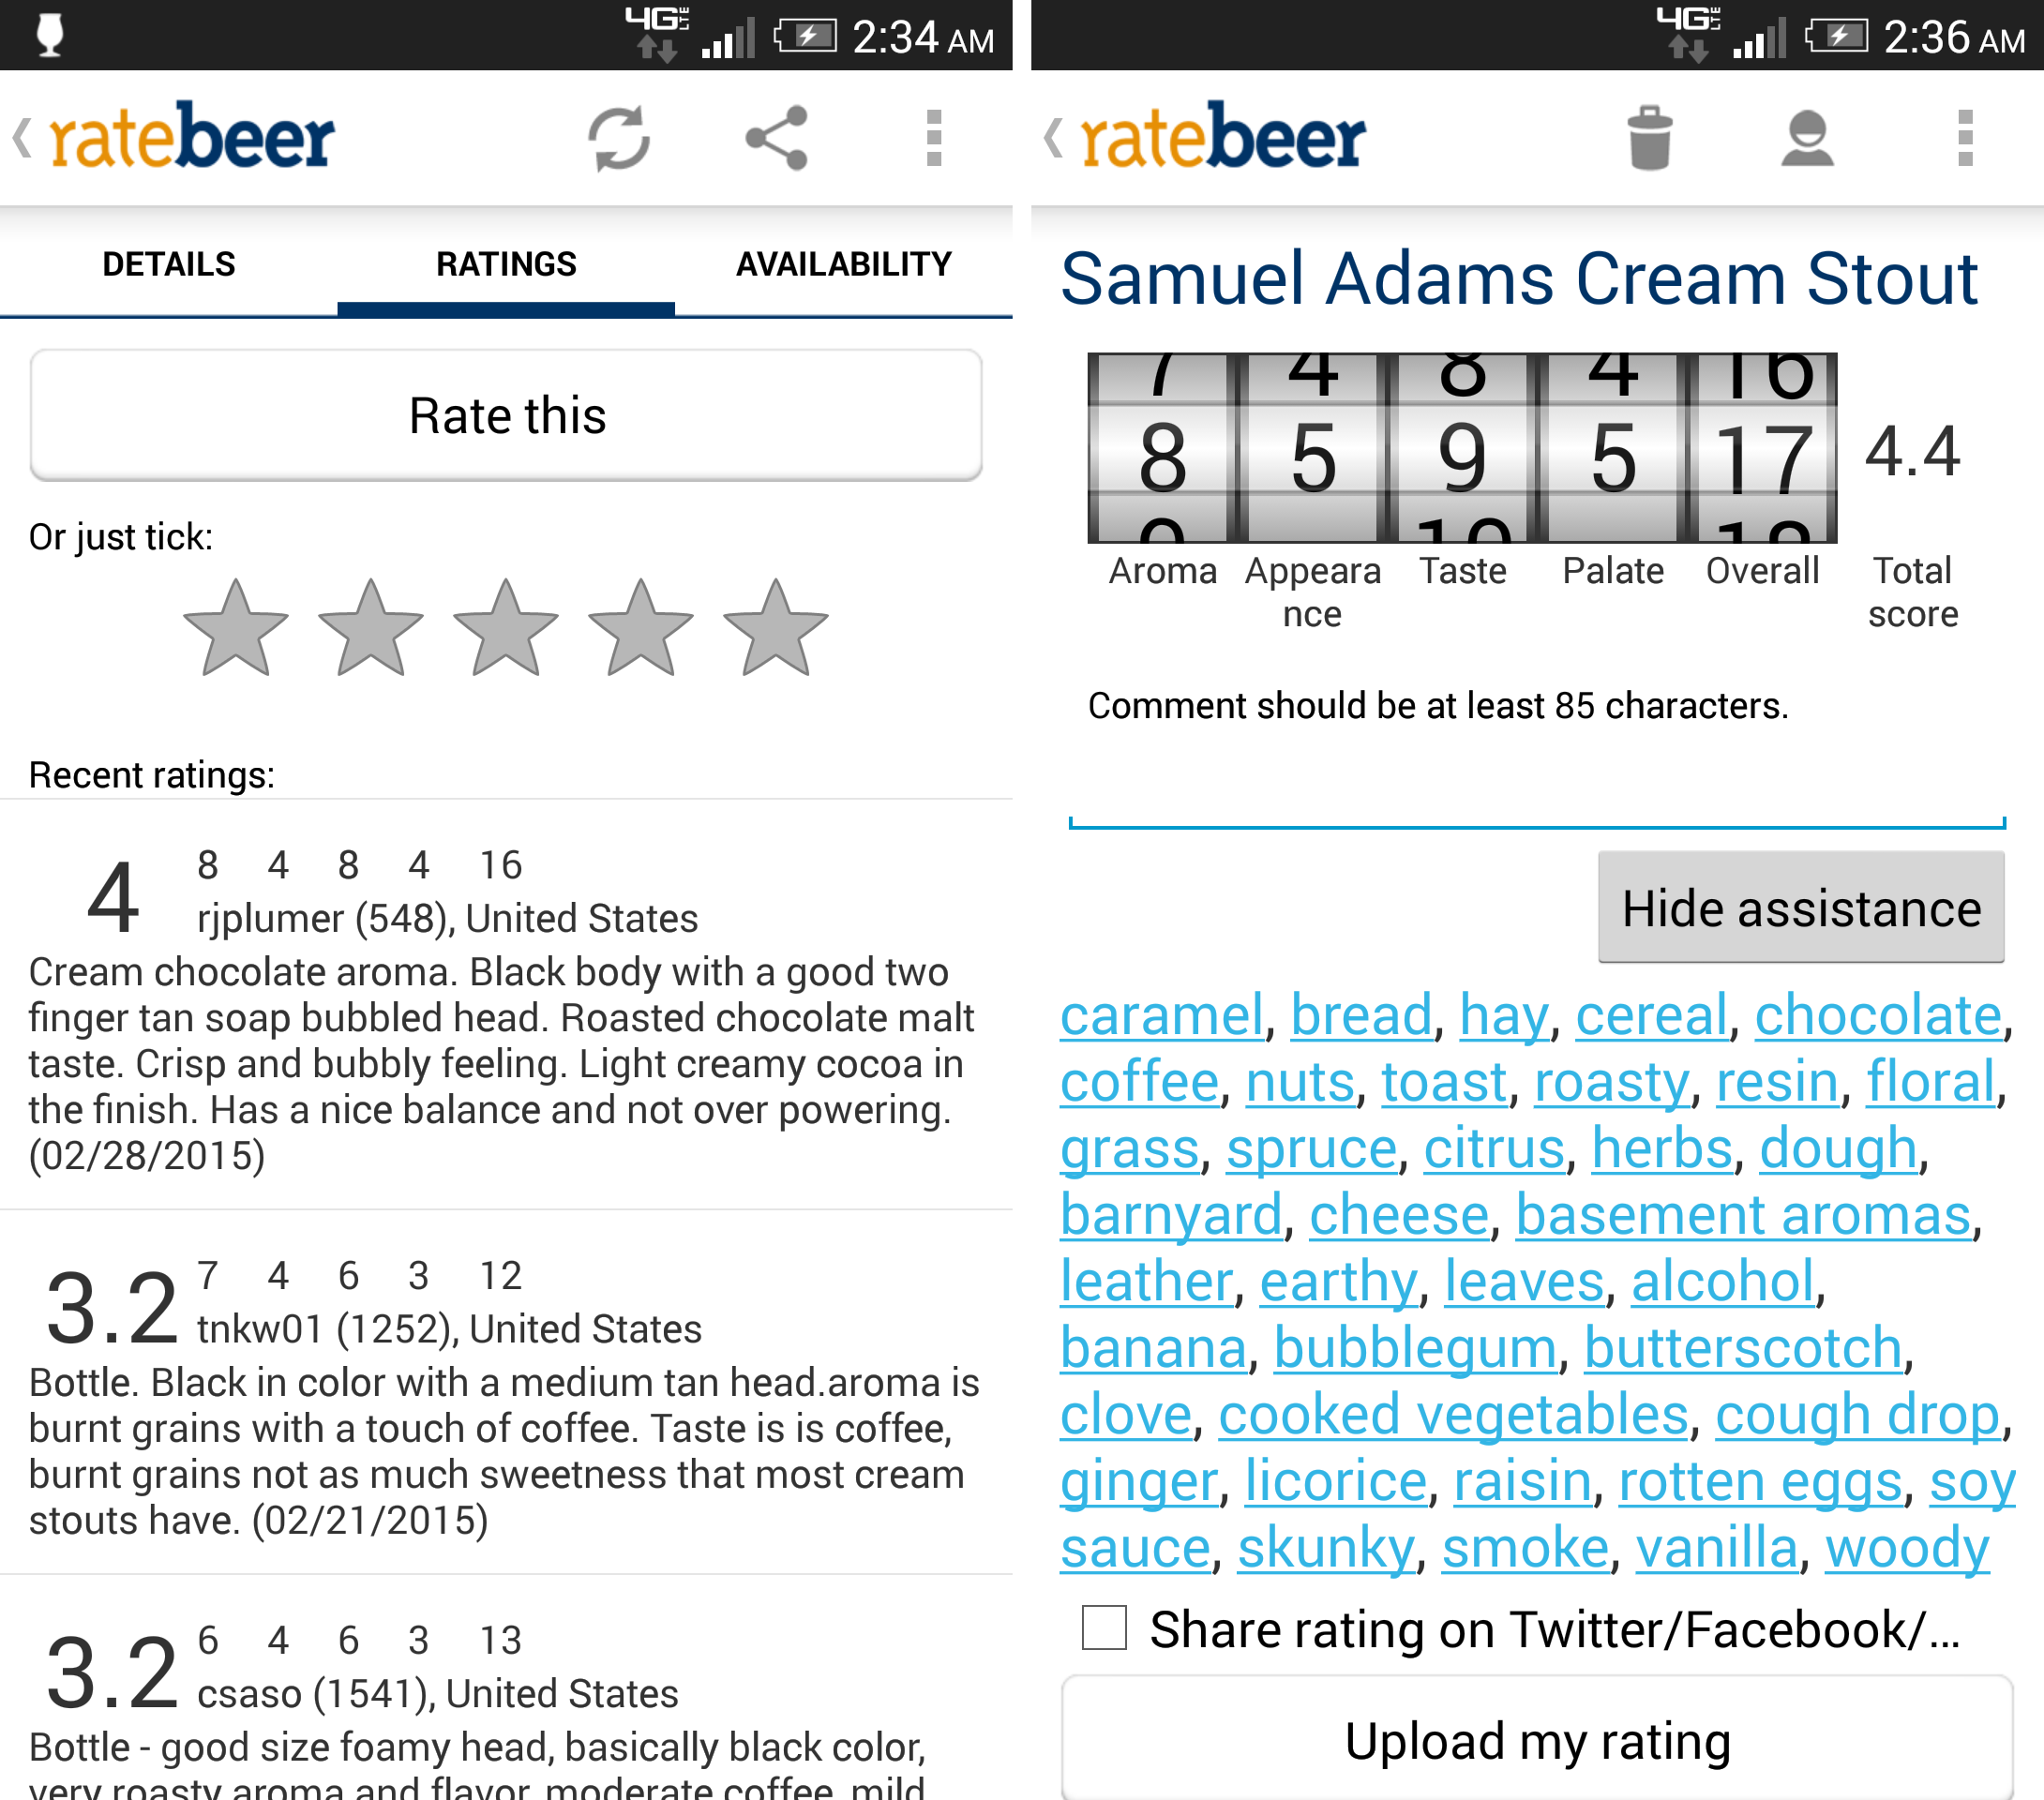 Screenshots showing the rating process on RateBeer